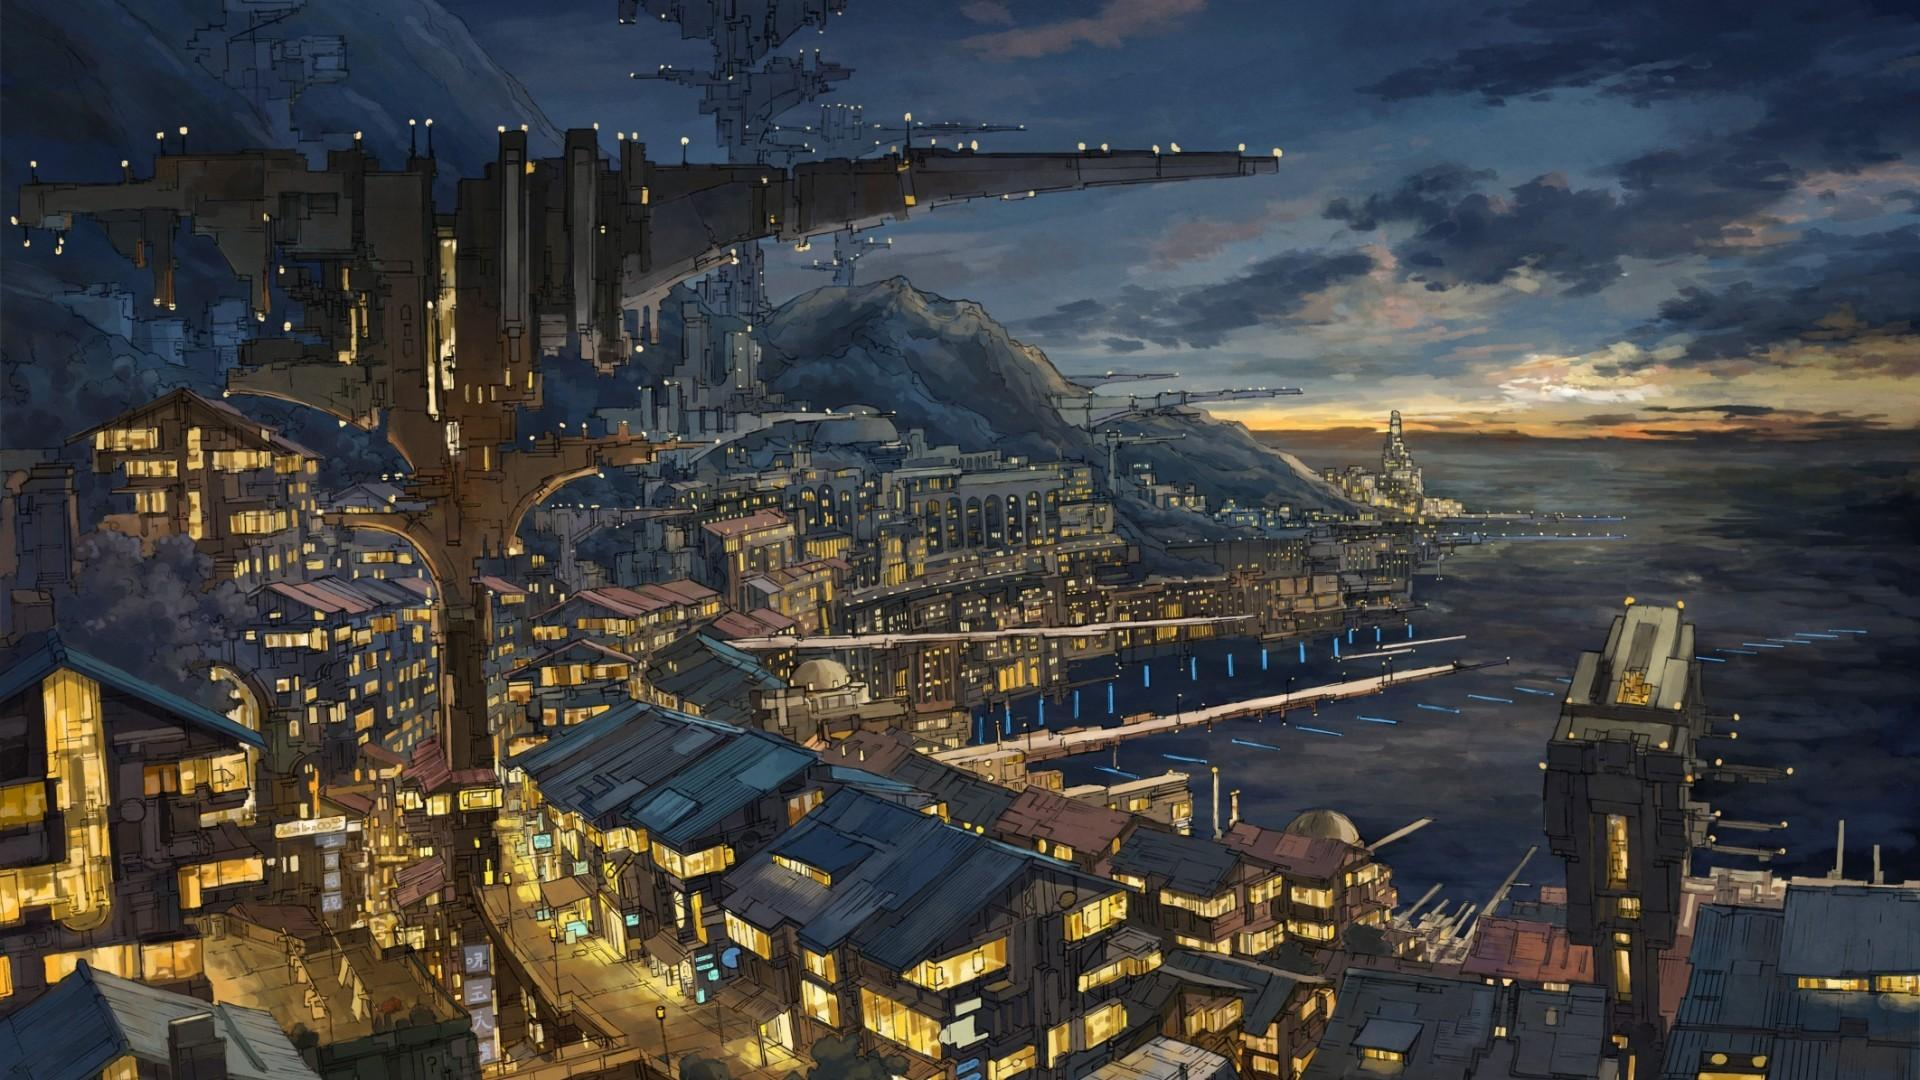 Anime City 1920x1080 Wallpapers - Wallpaper Cave